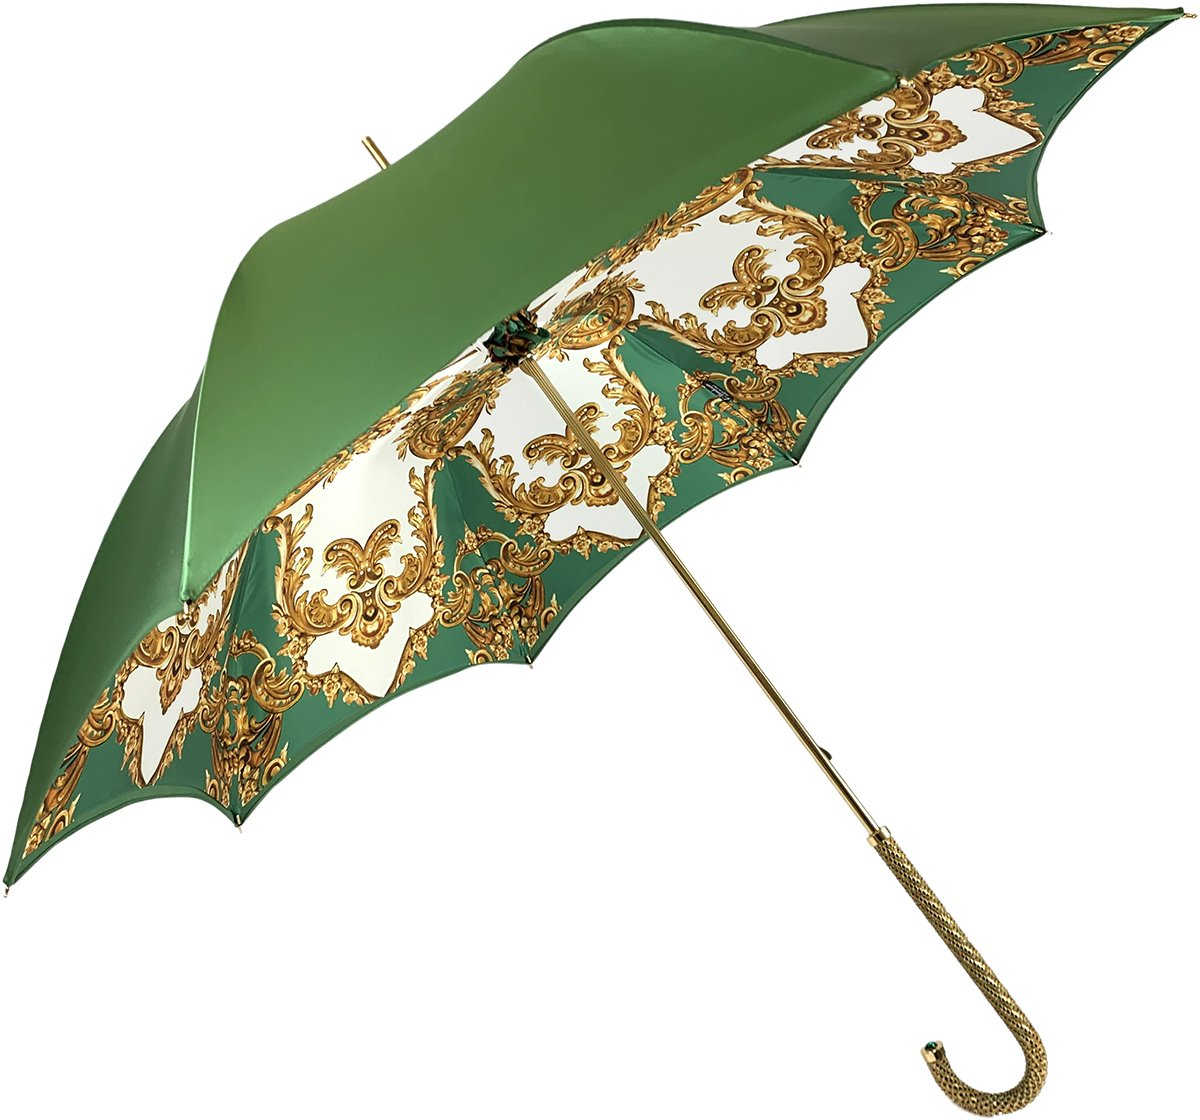 Women's Green Umbrella - IL MARCHESATO LUXURY UMBRELLAS, CANES AND SHOEHORNS